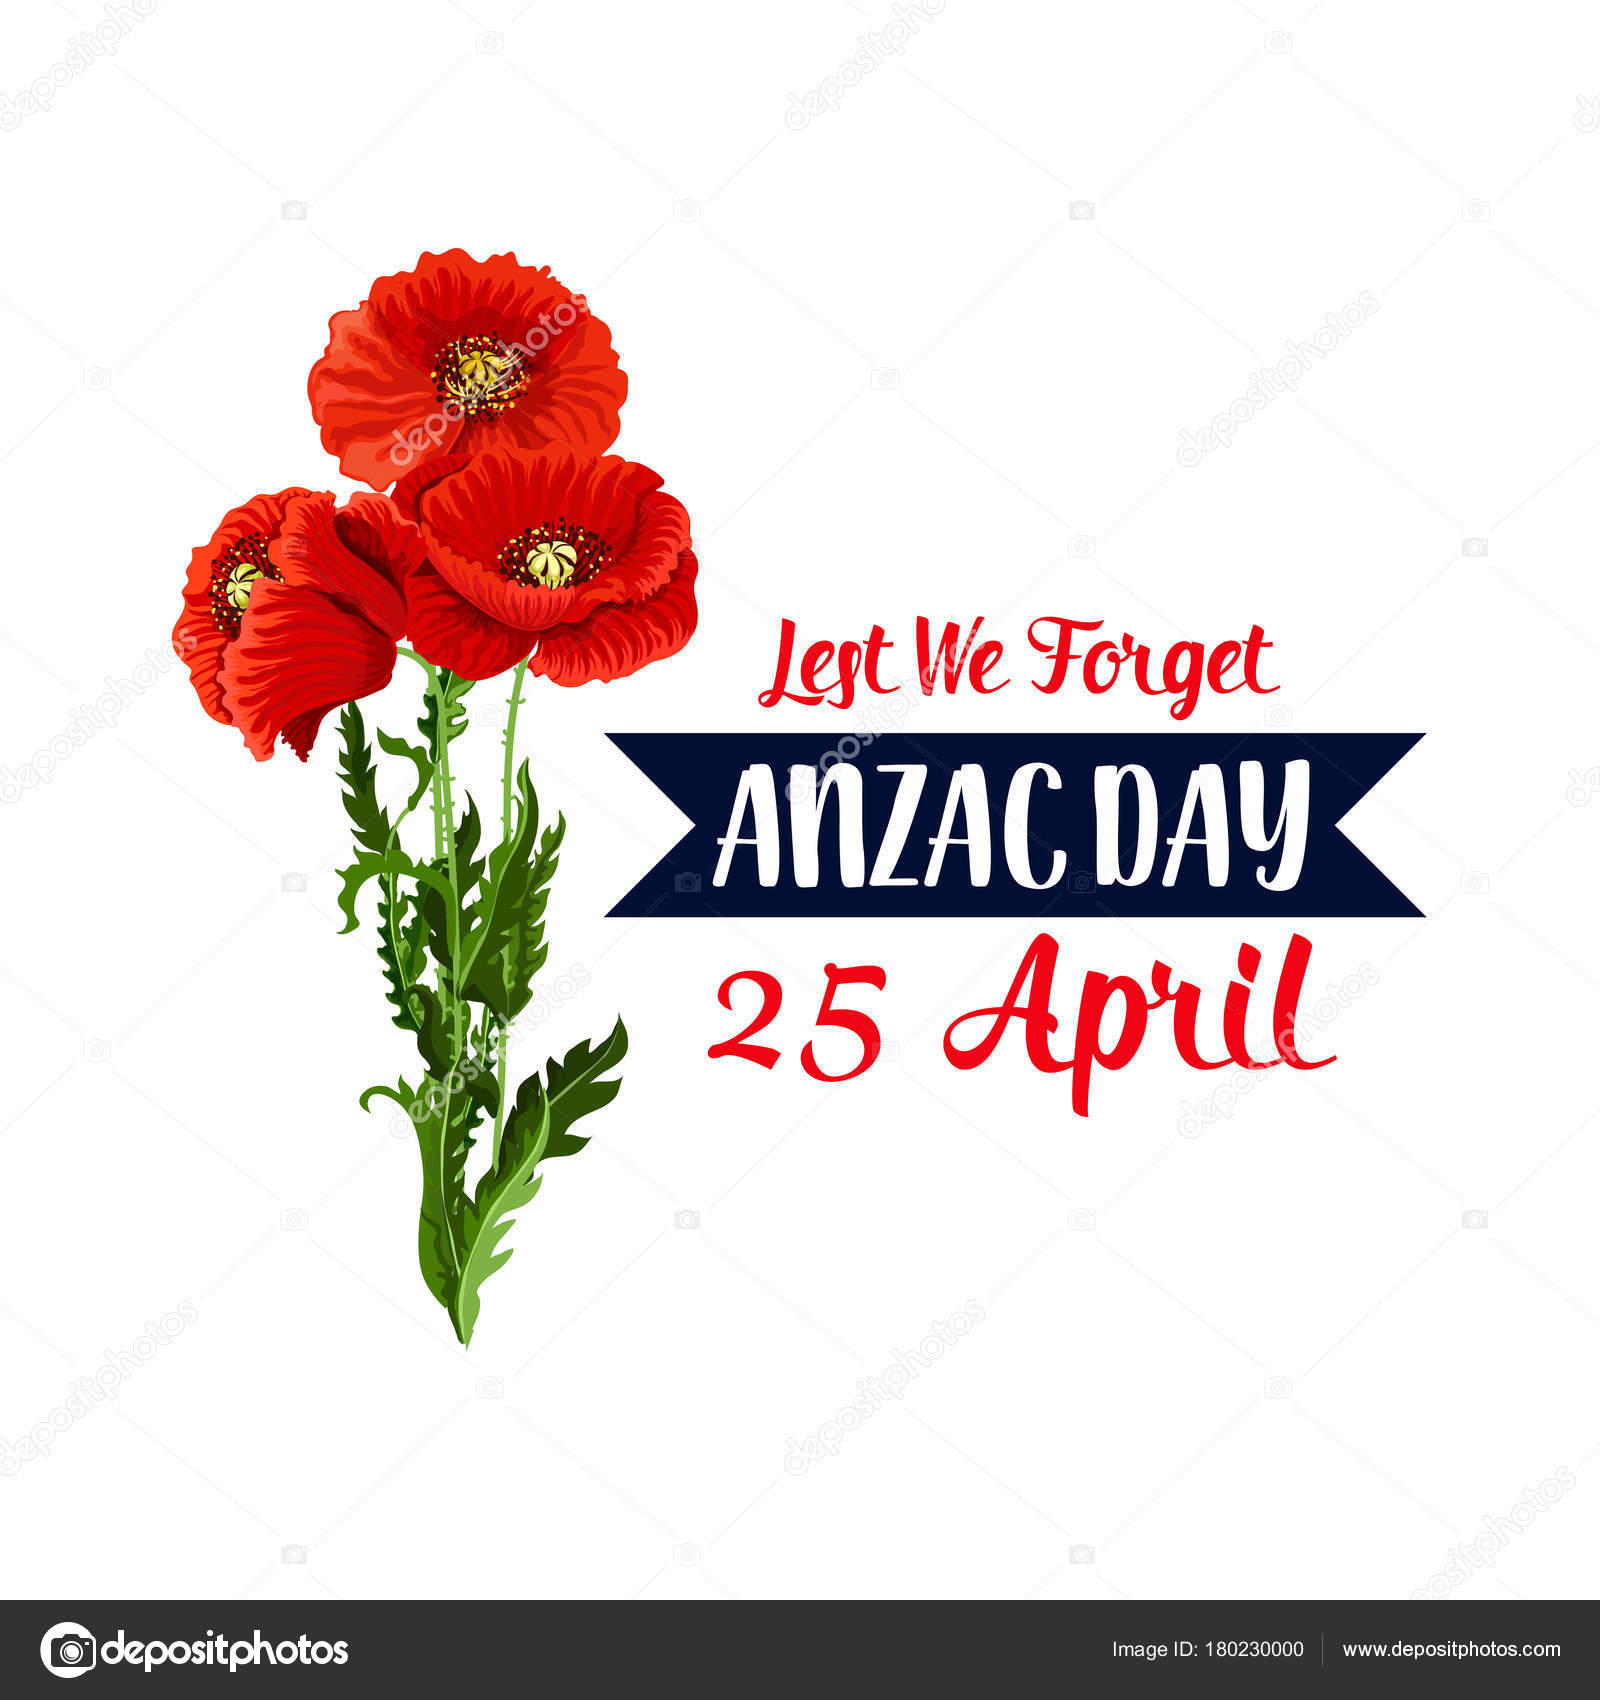 Anzac day 25 april red poppy vector icon ribbon stock vector vector red poppy flowers symbol and lest we forget on blue ribbon for anzac day national commemorative celebration vector buycottarizona